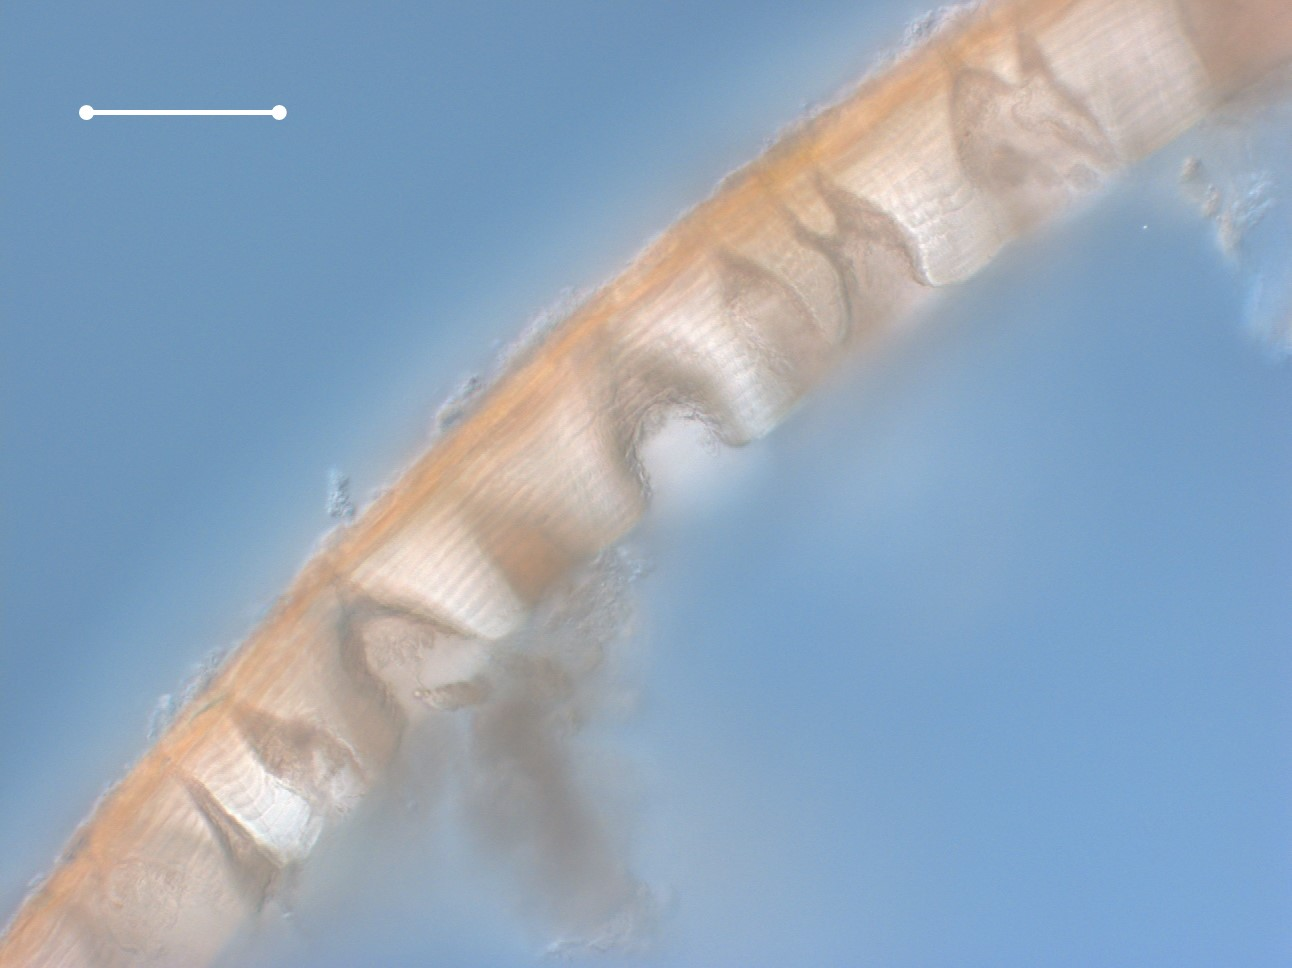 Cross-section of the cuticle of a large  Colossendeis  showing the many pores extending through the cuticle.  Specimen viewed with differential interference contrast (DIC) optics at 20x.  Scale bar = 100 microns.